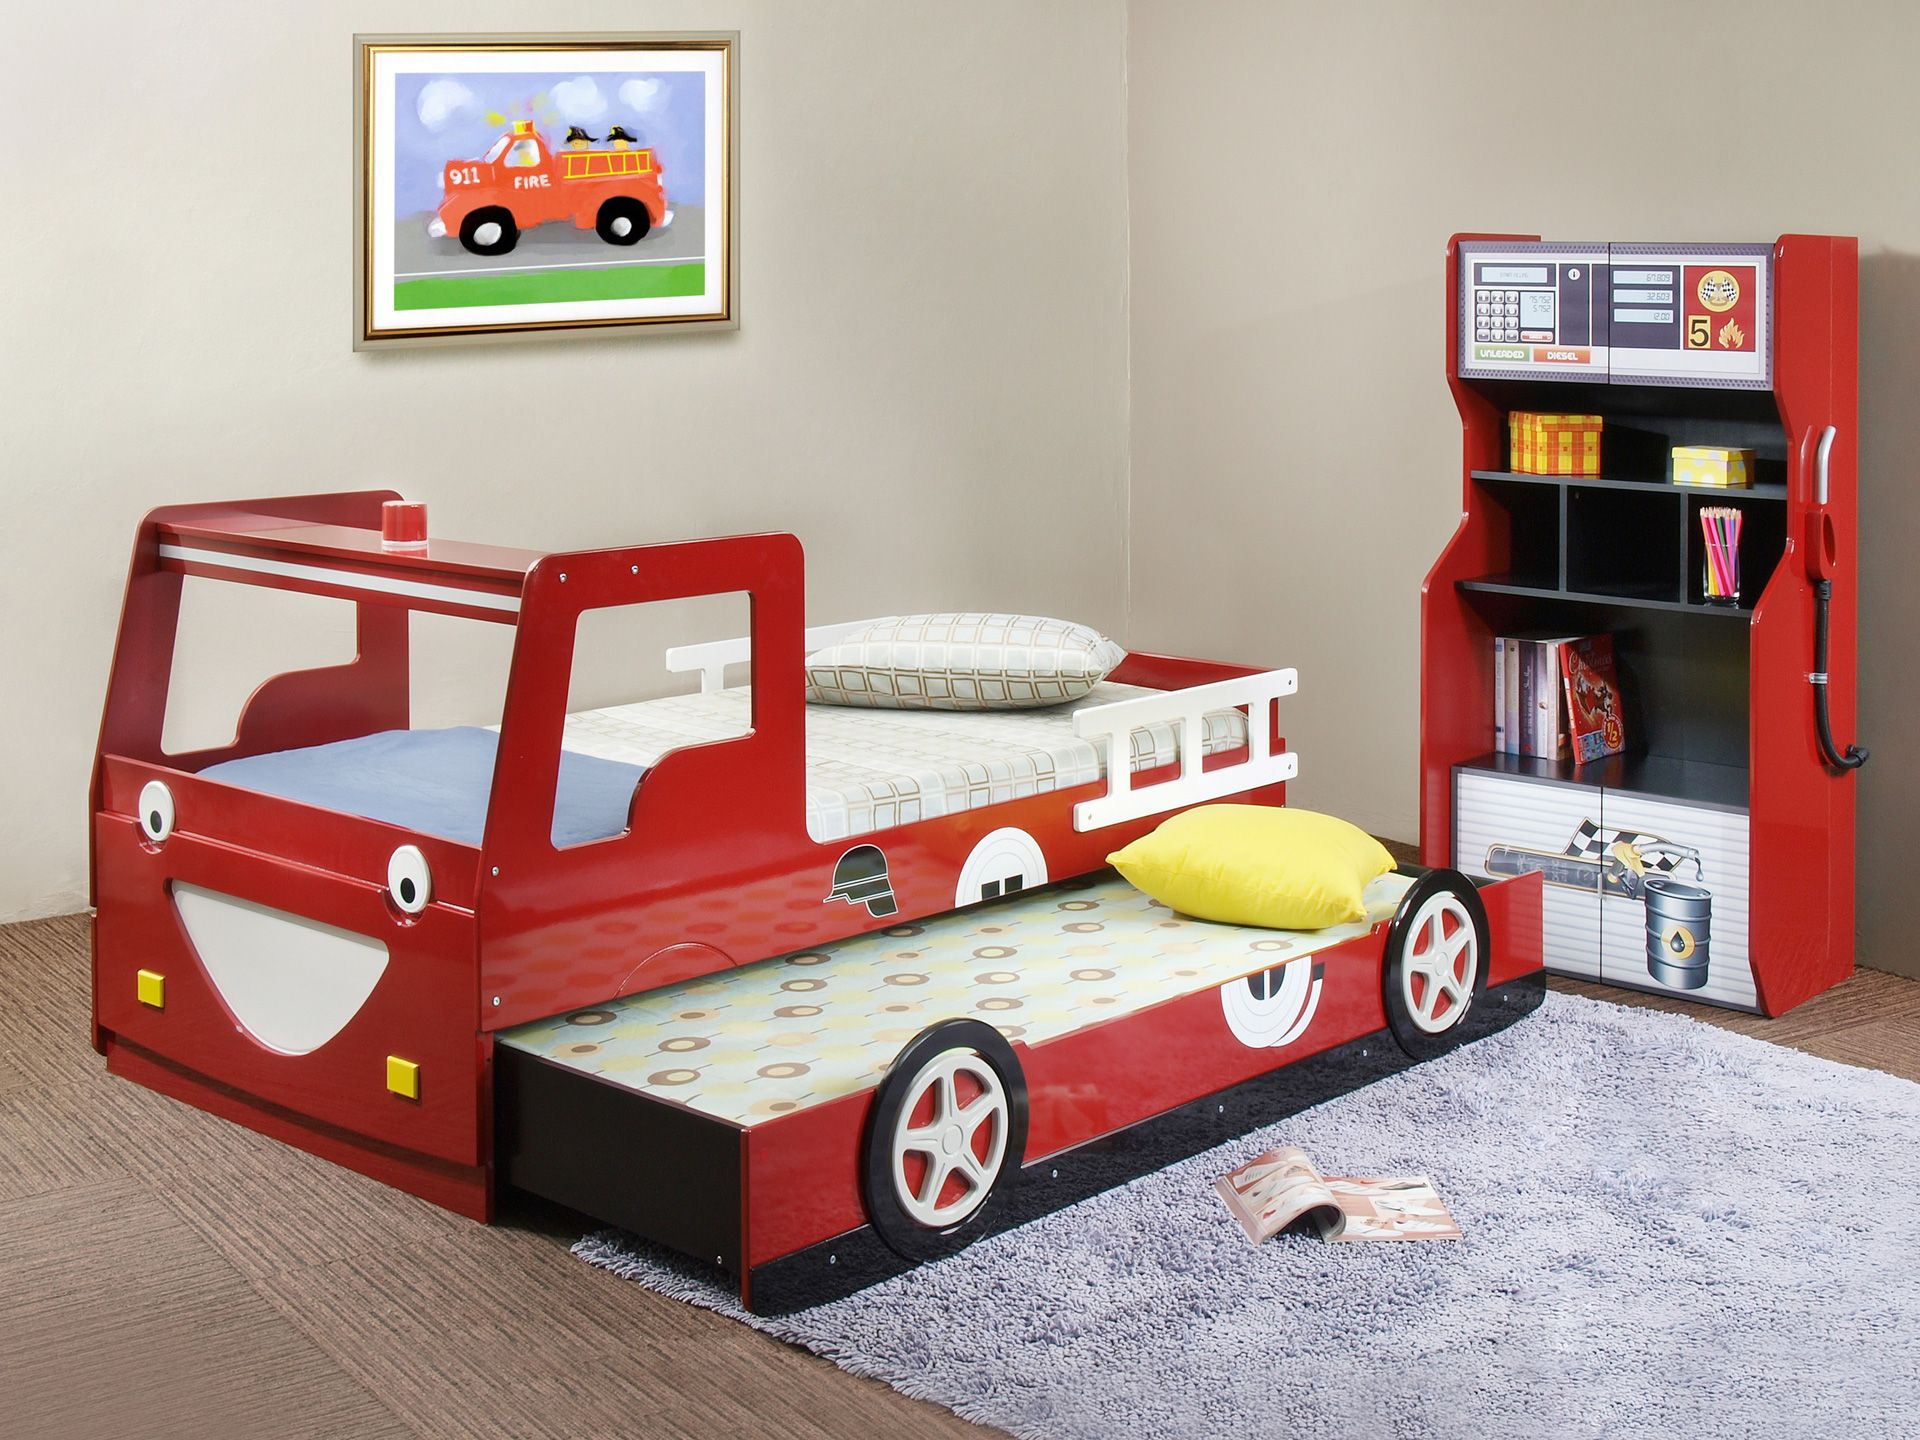 Bedroom Design Amazing Kids Bed With Racing Cars Models And Other